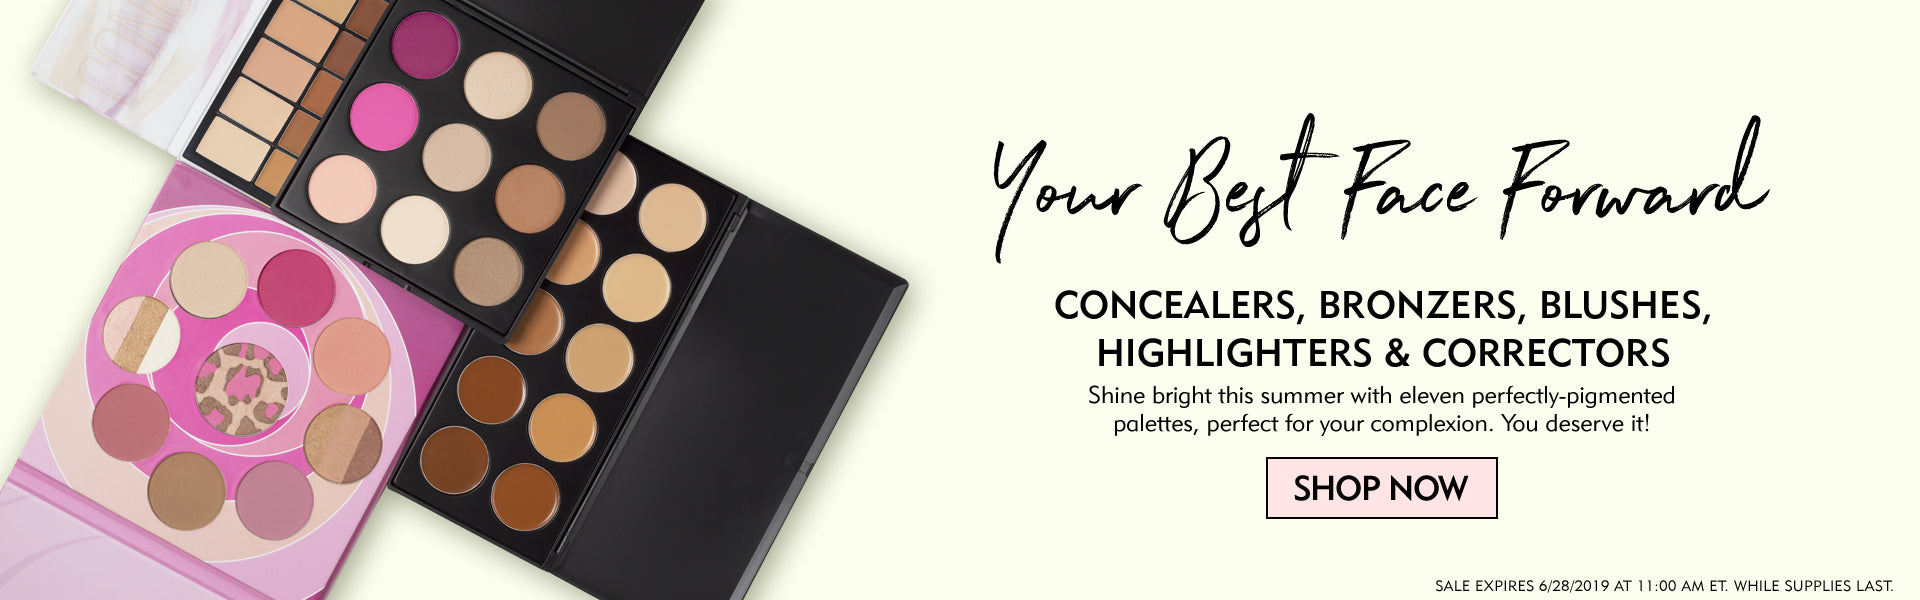 Your Best Face Forward - Concealers, Bronzers, Blushes, Highlighters, & Correctors